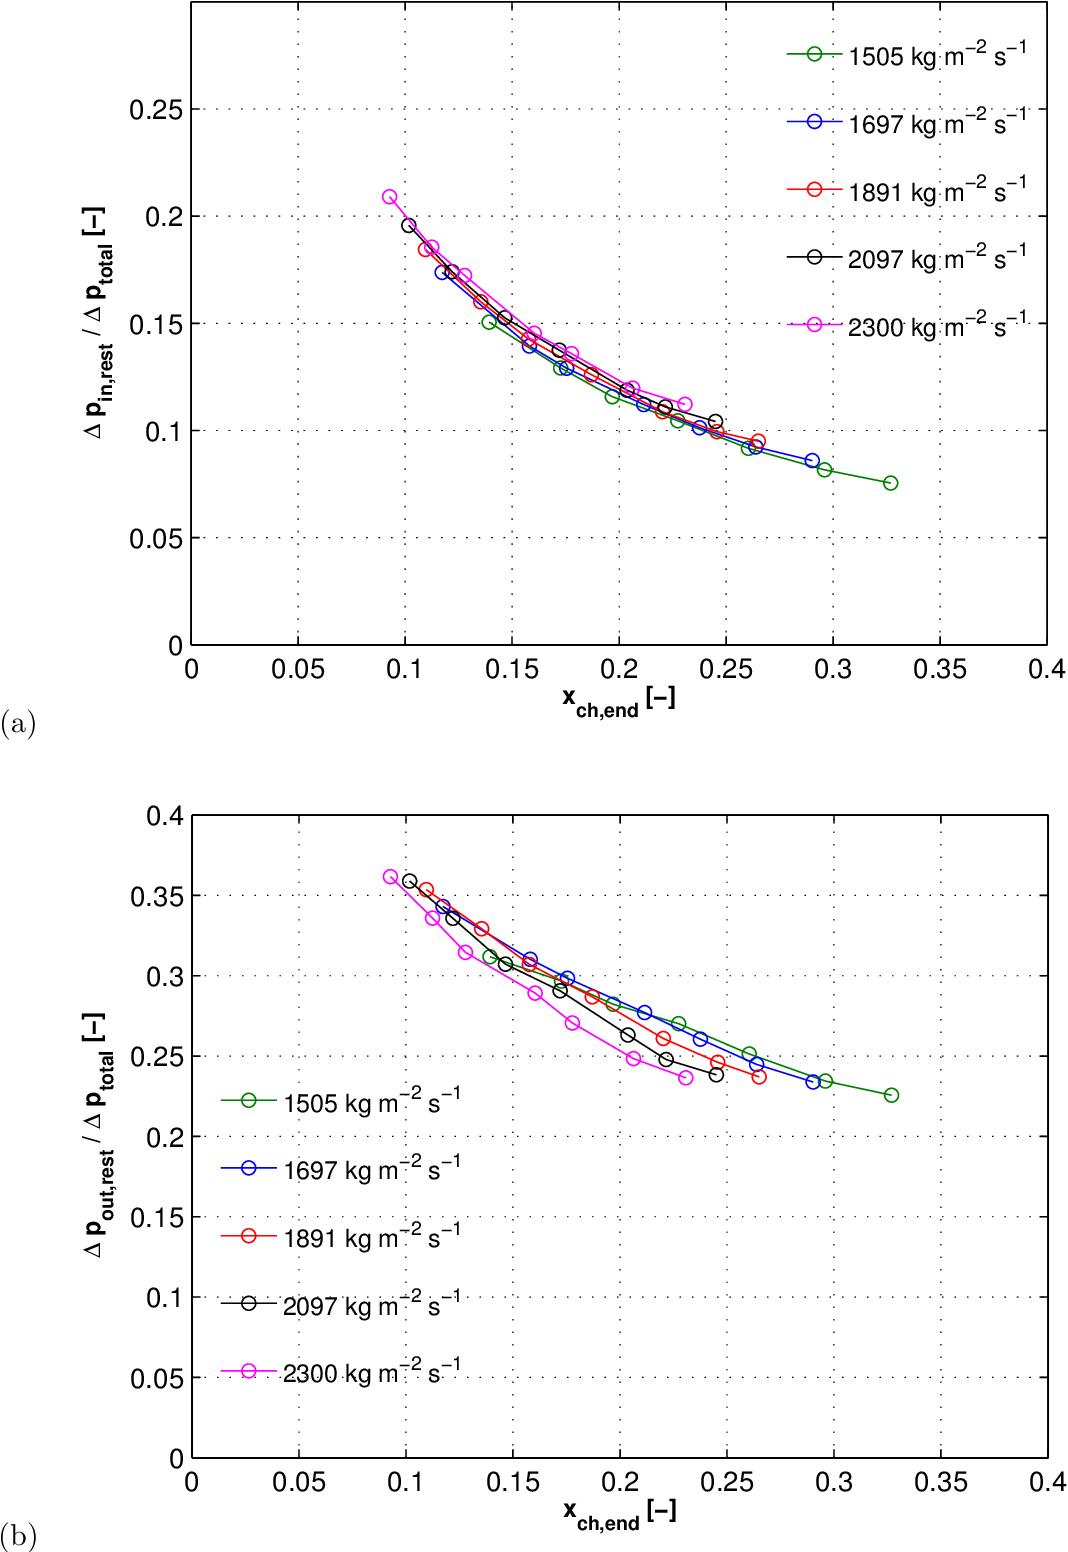 Figure 6.15: (a) ∆pin,rest /∆ptotal, and (b) ∆pout,rest /∆ptotal ratios for R236fa flowing within the micro-evaporator with the inlet restrictions of ein,rest=2.